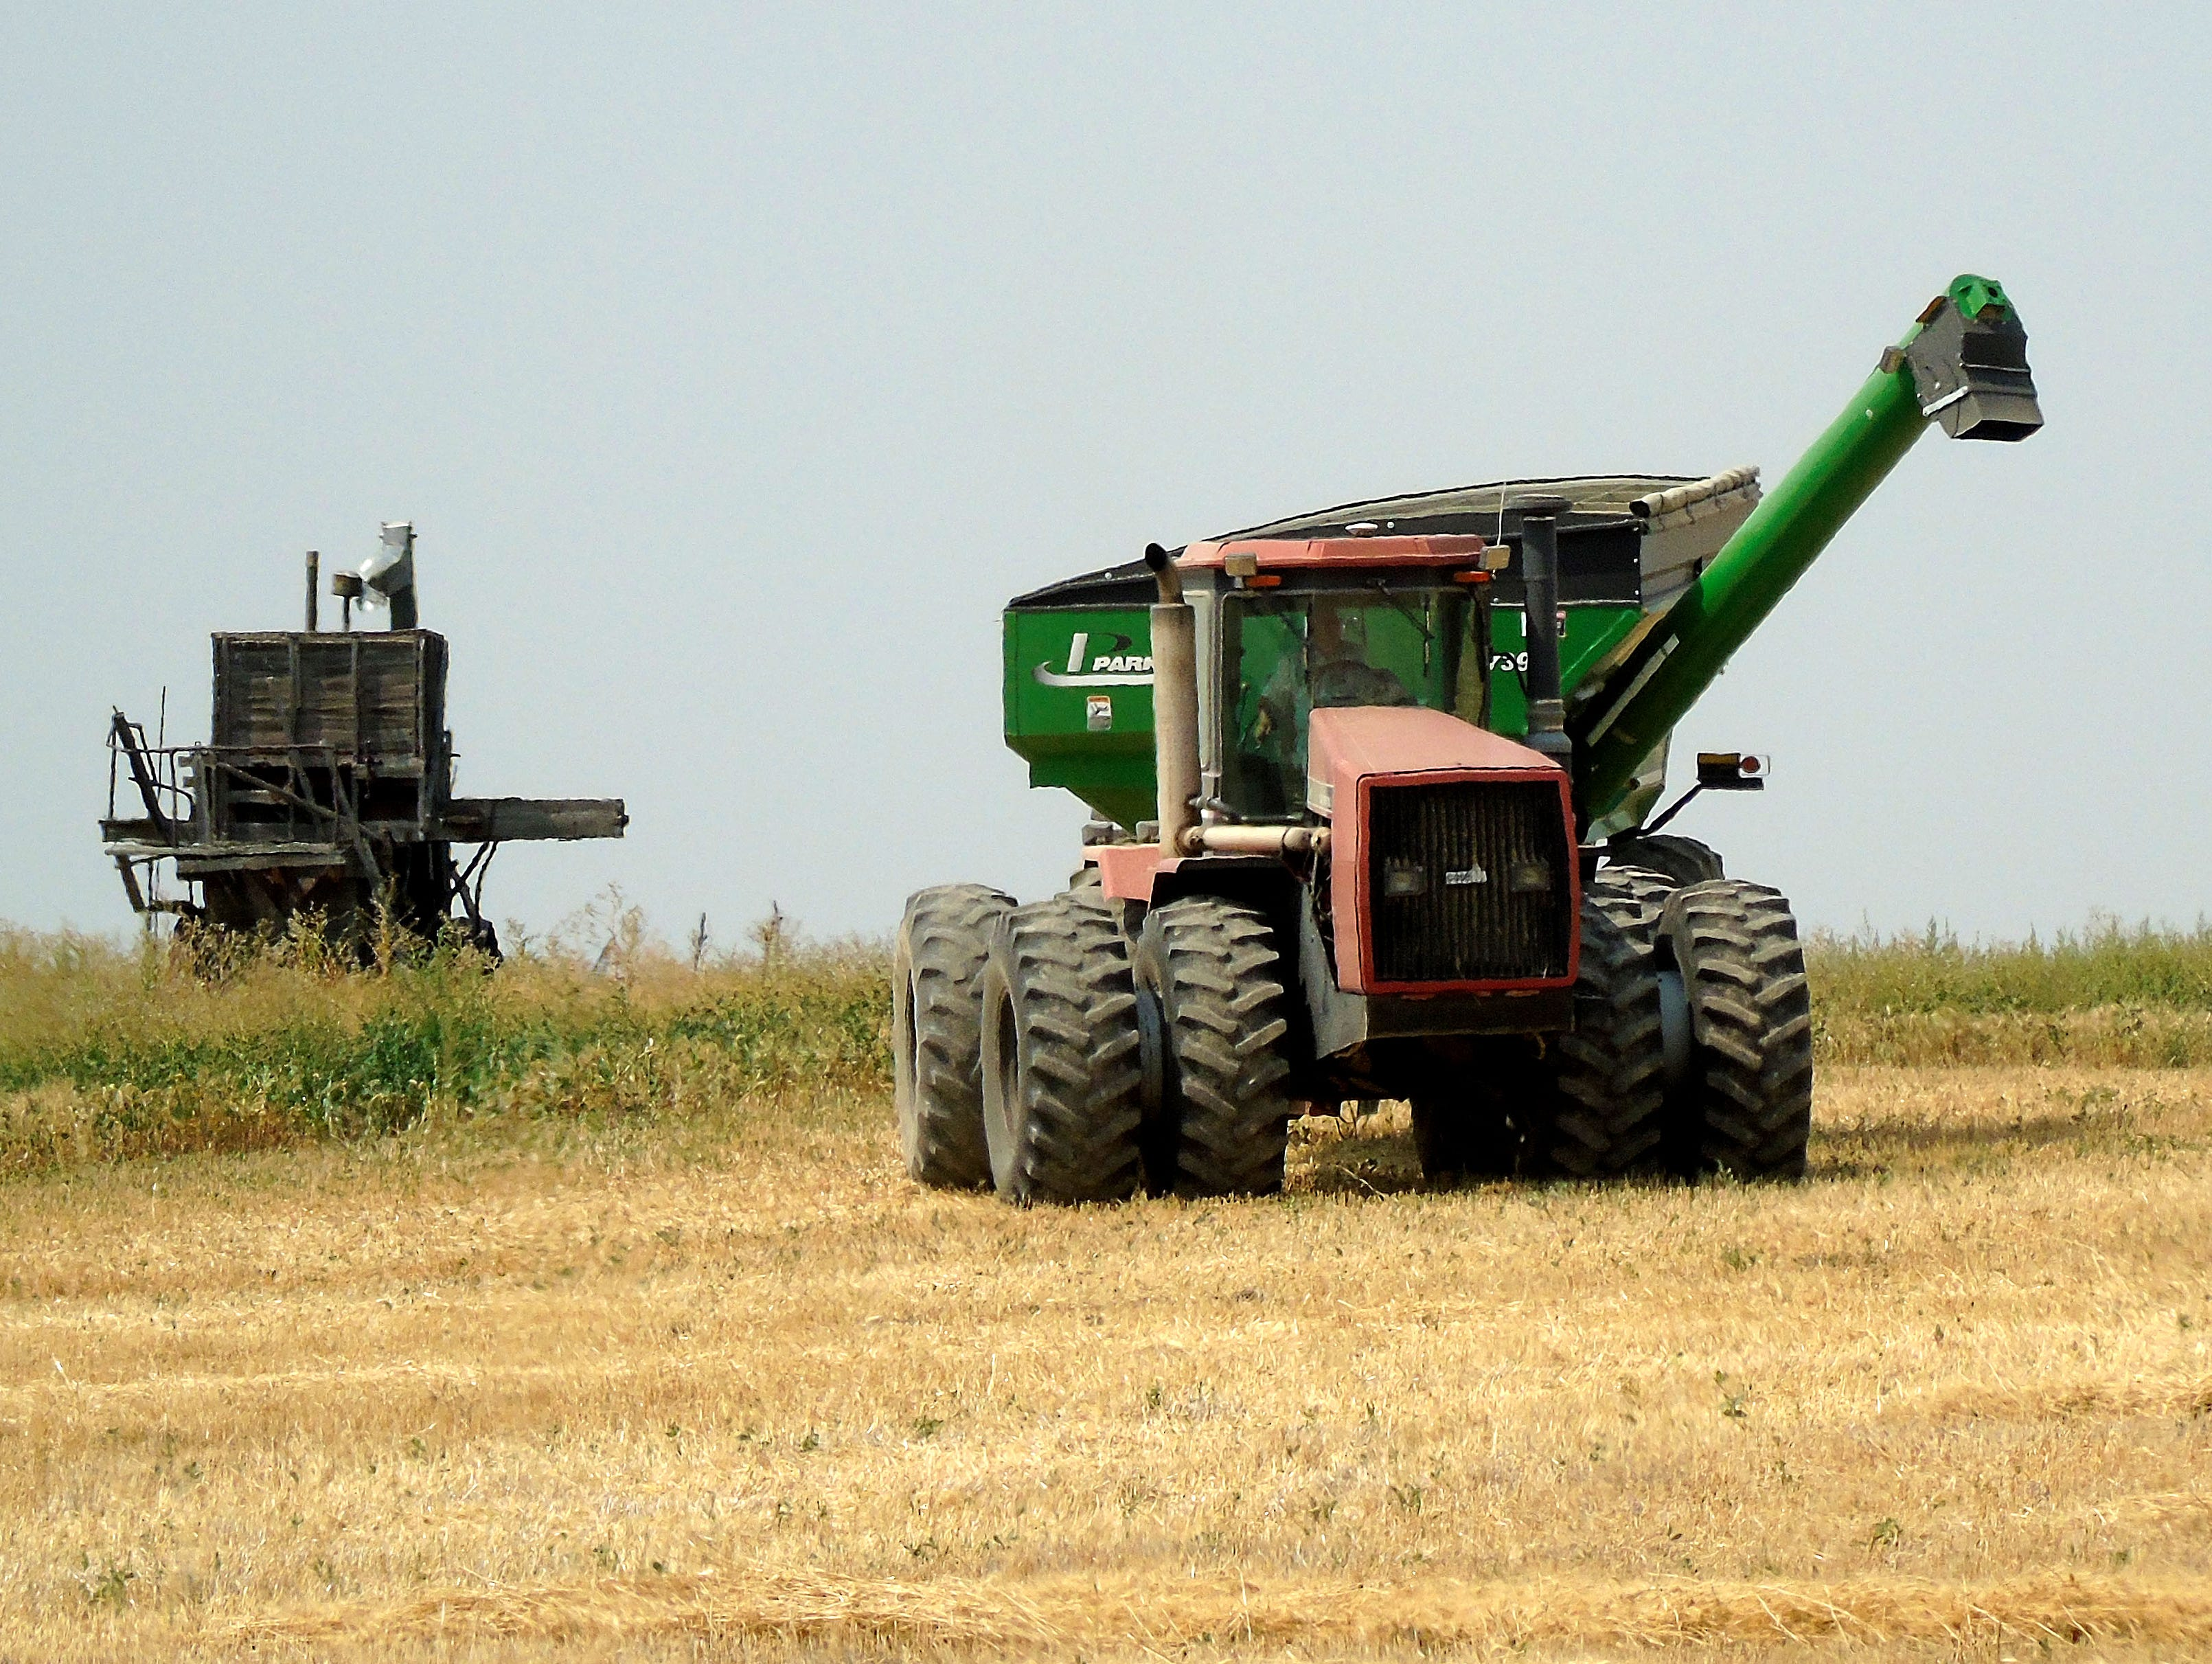 The old and new: What looks like an old wood threshing machine is parked in a field near a modern tractor pulling a grain cart during harvest near Carter.